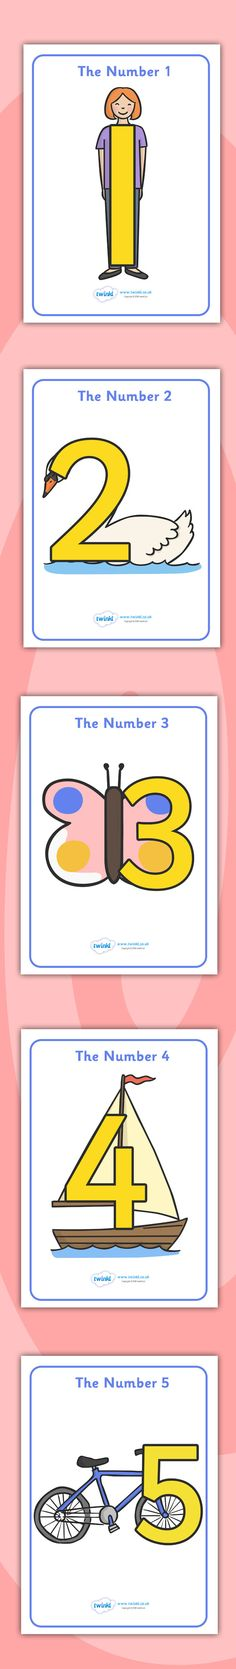 Twinkl Resources >> Number Shapes Posters >> Printable resources for Primary, EYFS, KS1 and SEN. Thousands of classroom displays and teaching aids! Numeracy, Maths, Numbers, Shapes